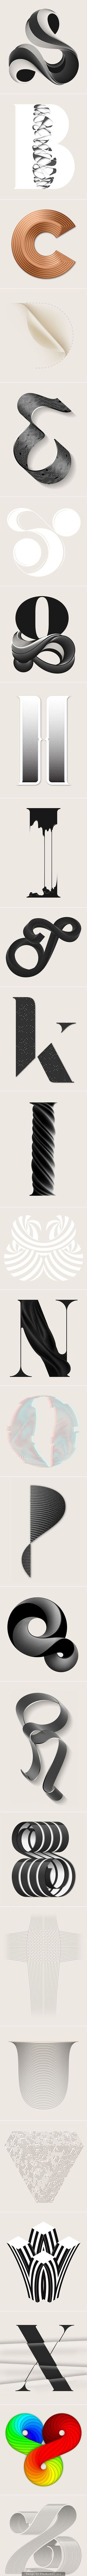 Alphabetica | Type Treatments by Anthony James